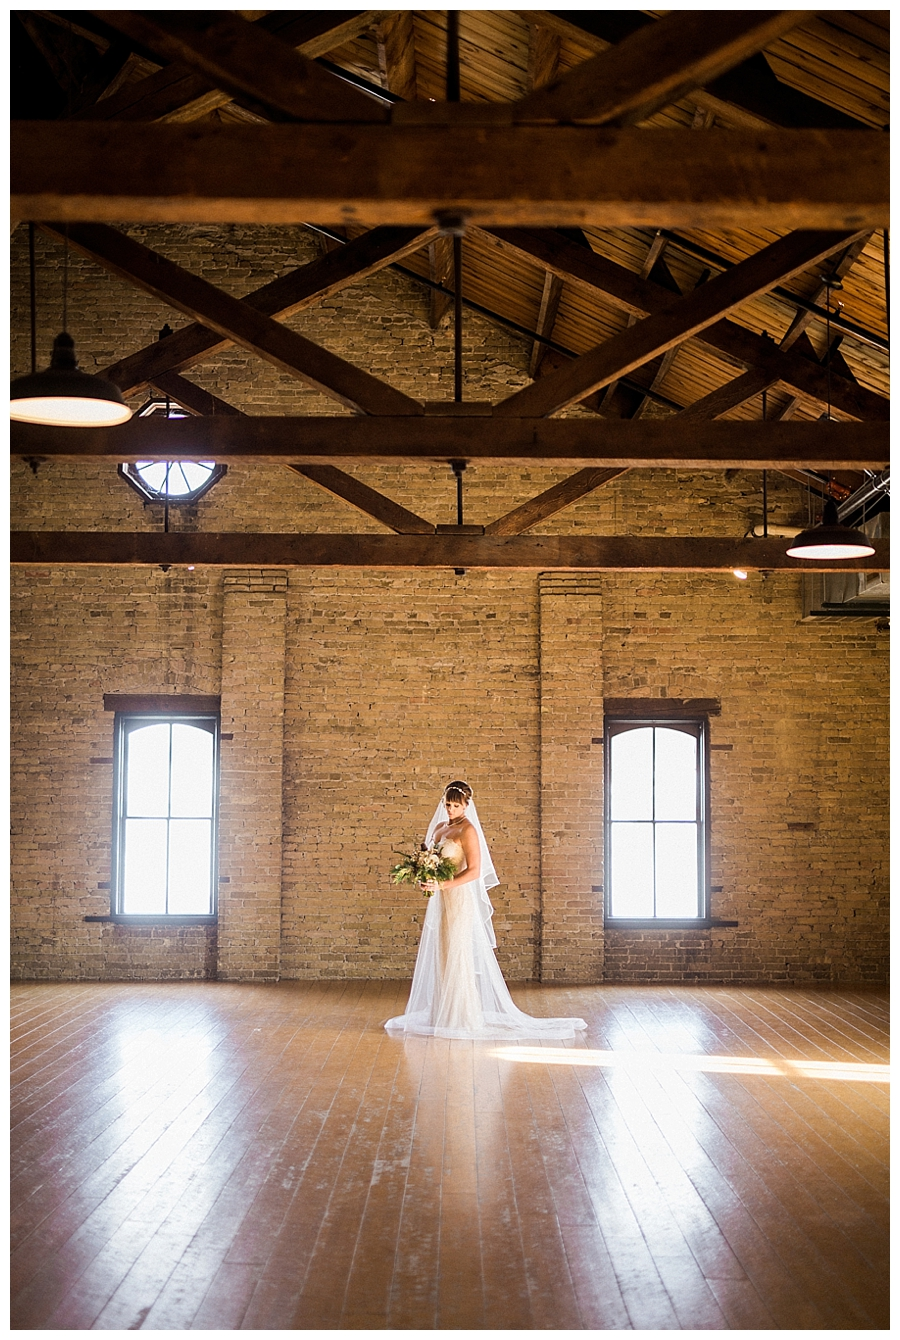 fine art photography of bride for their historic warehouse wedding at the Lageret